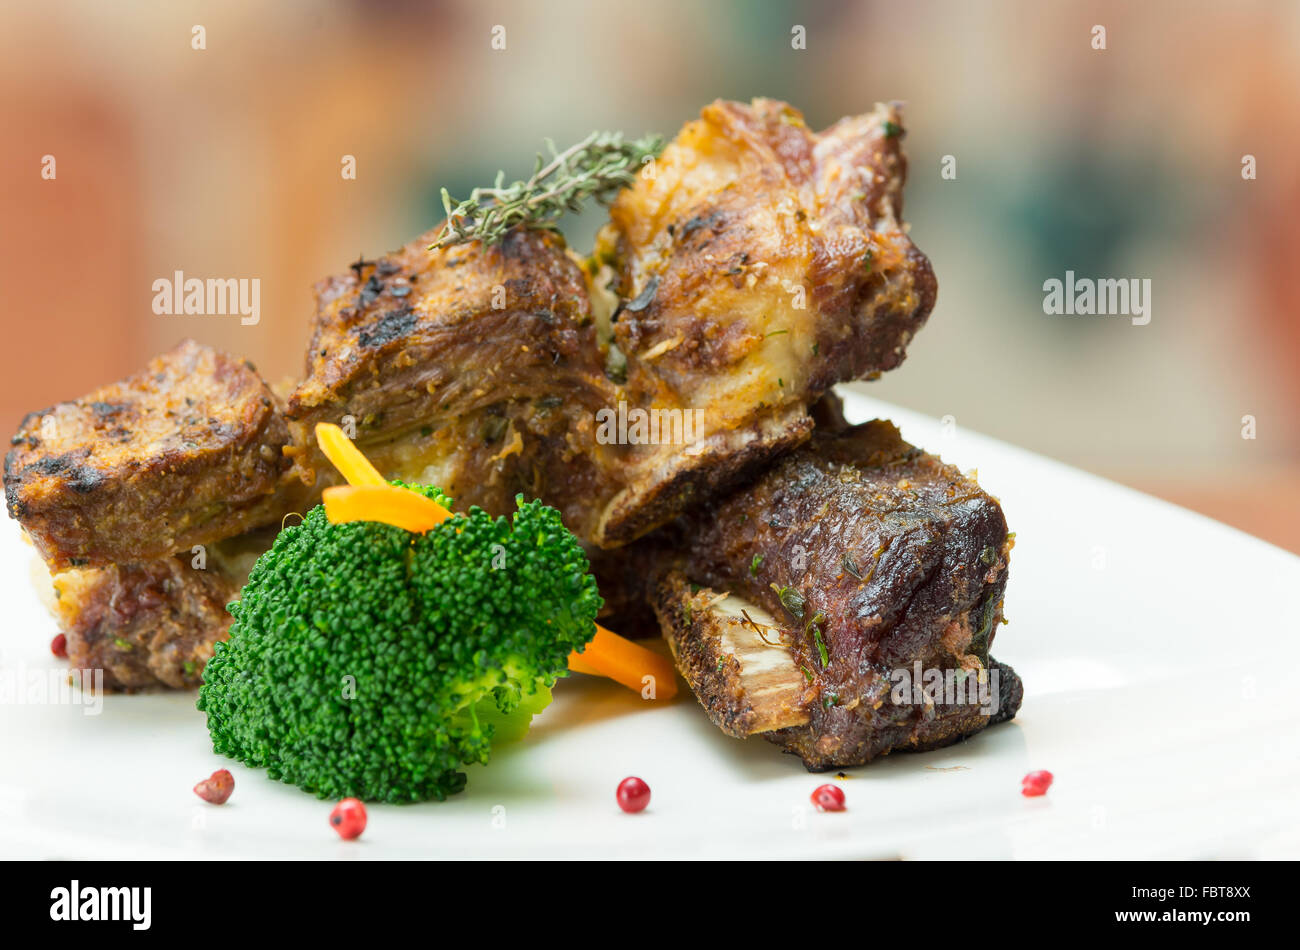 Delicious Rib Steak And Vegetables Placed On White Plate Elegant Stock Photo Alamy